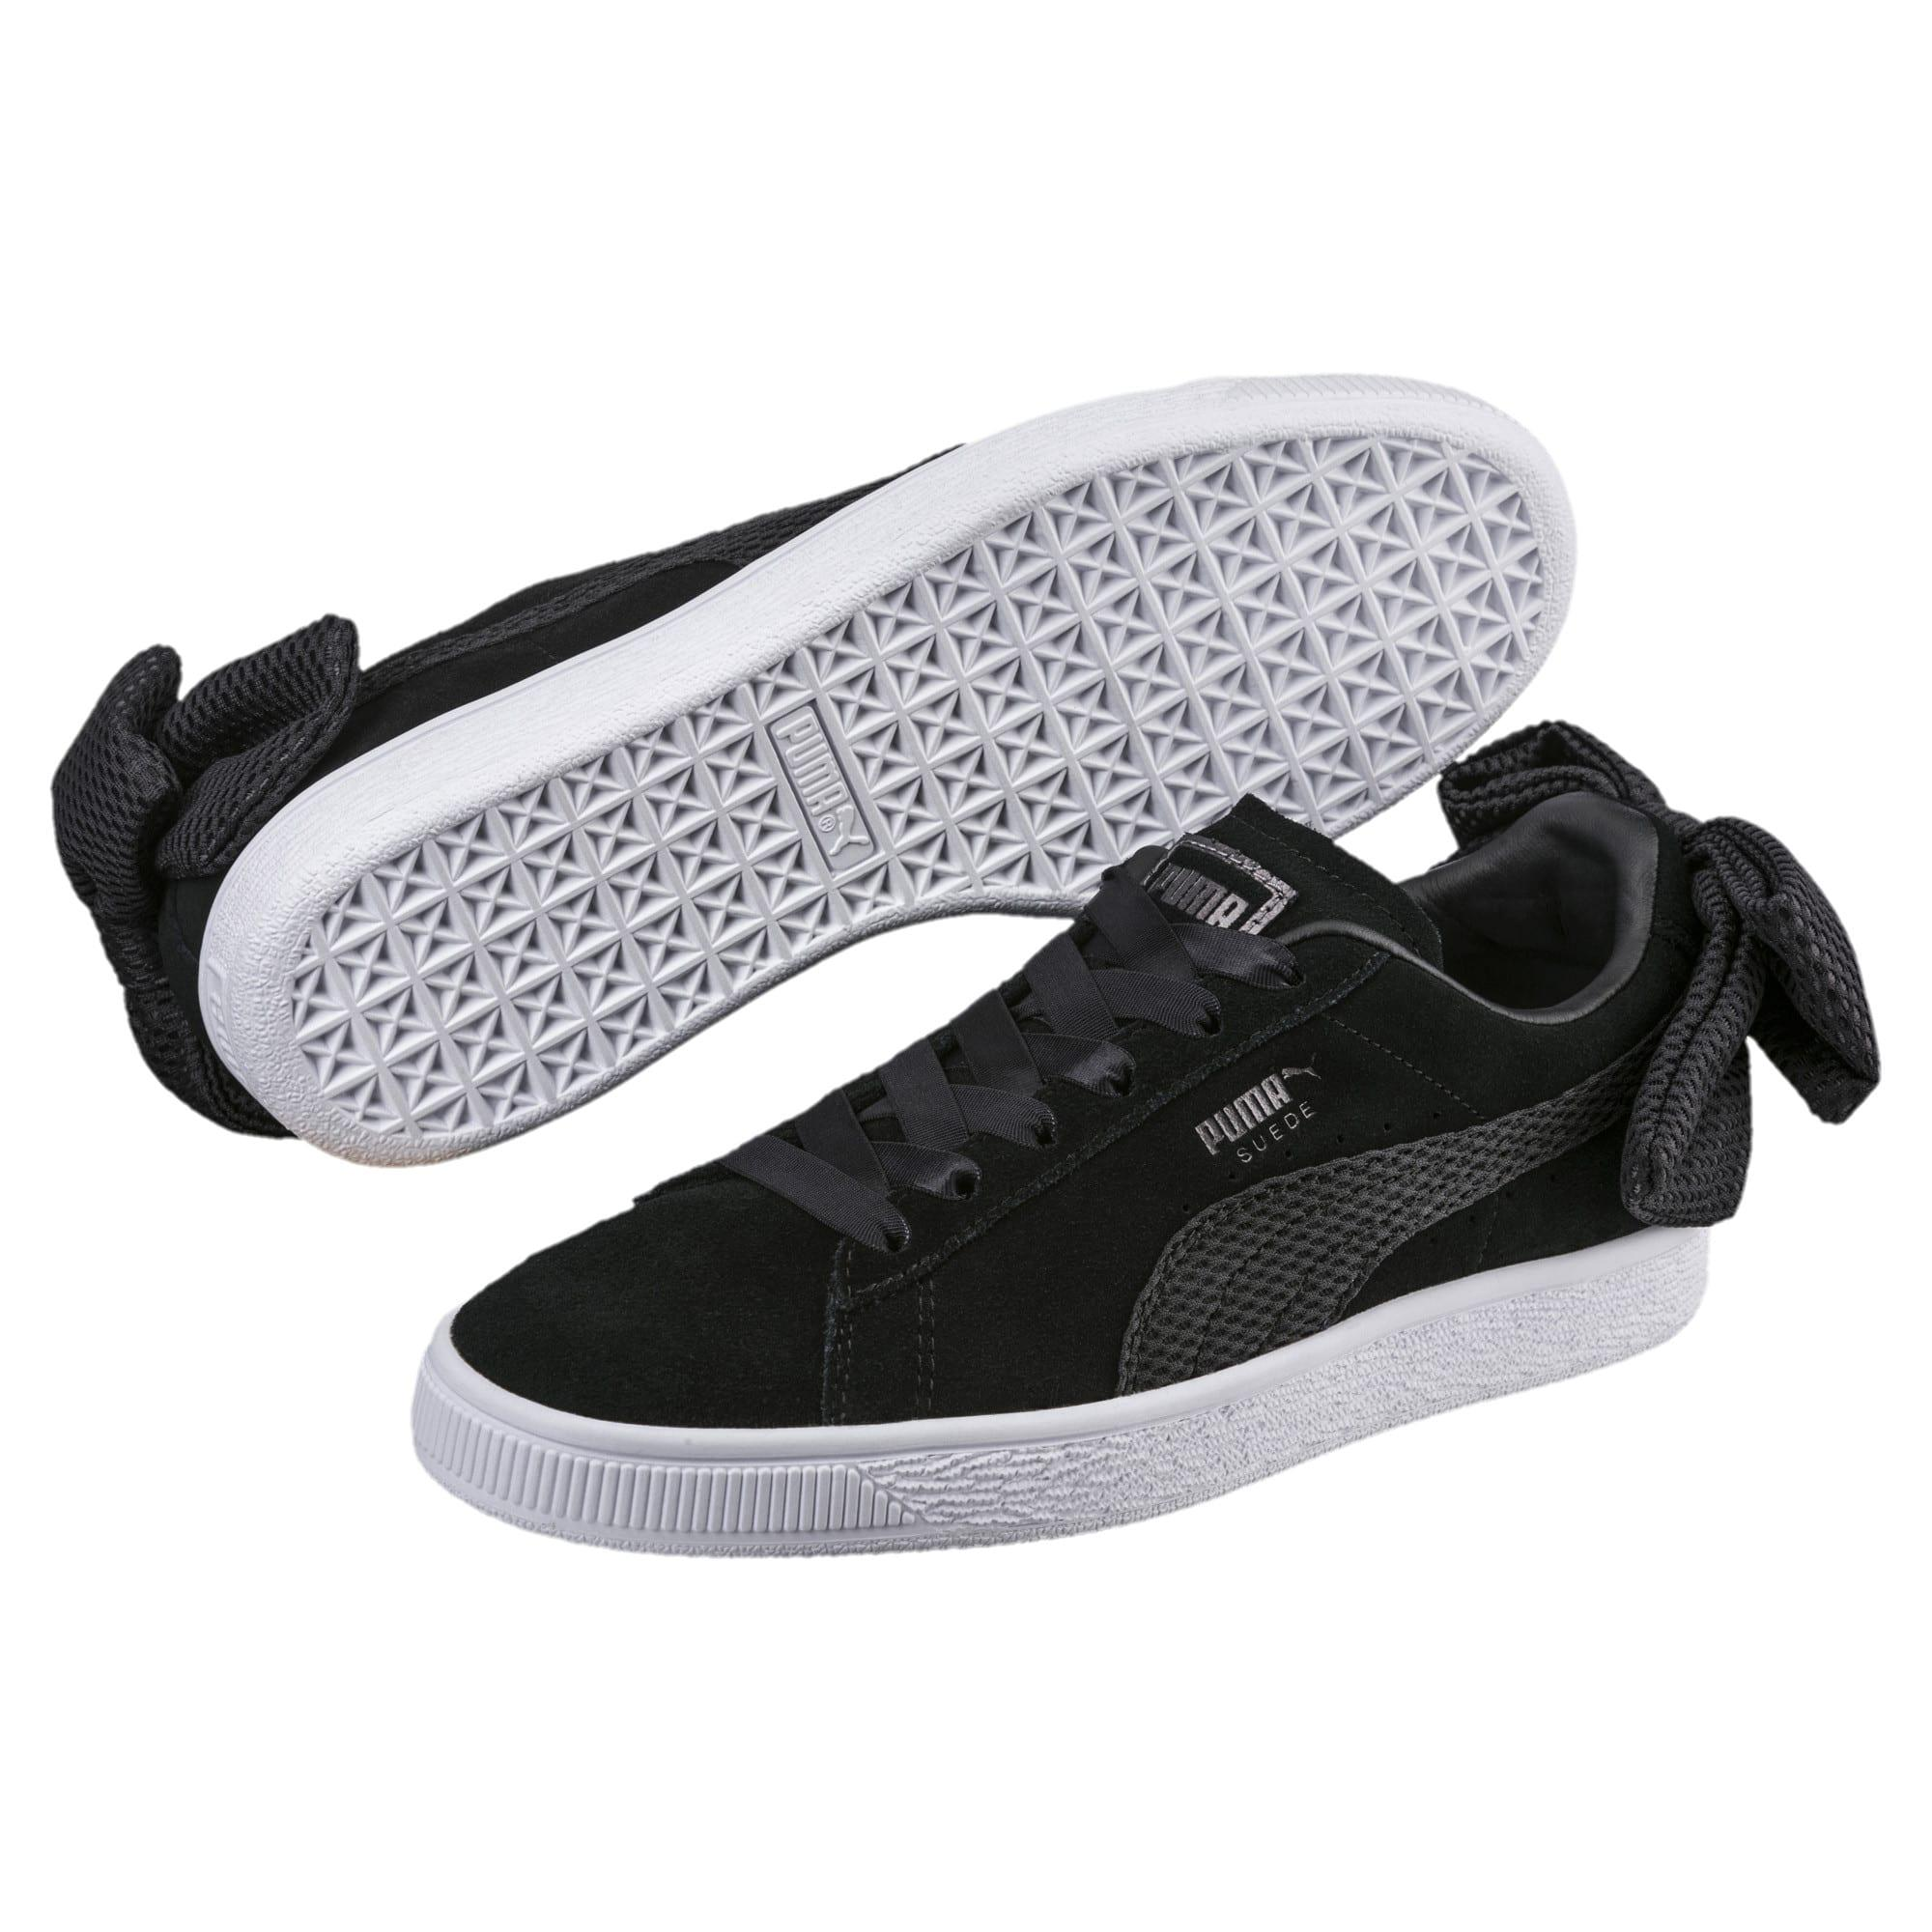 Black Suede Bow Uprising Women's Sneakers